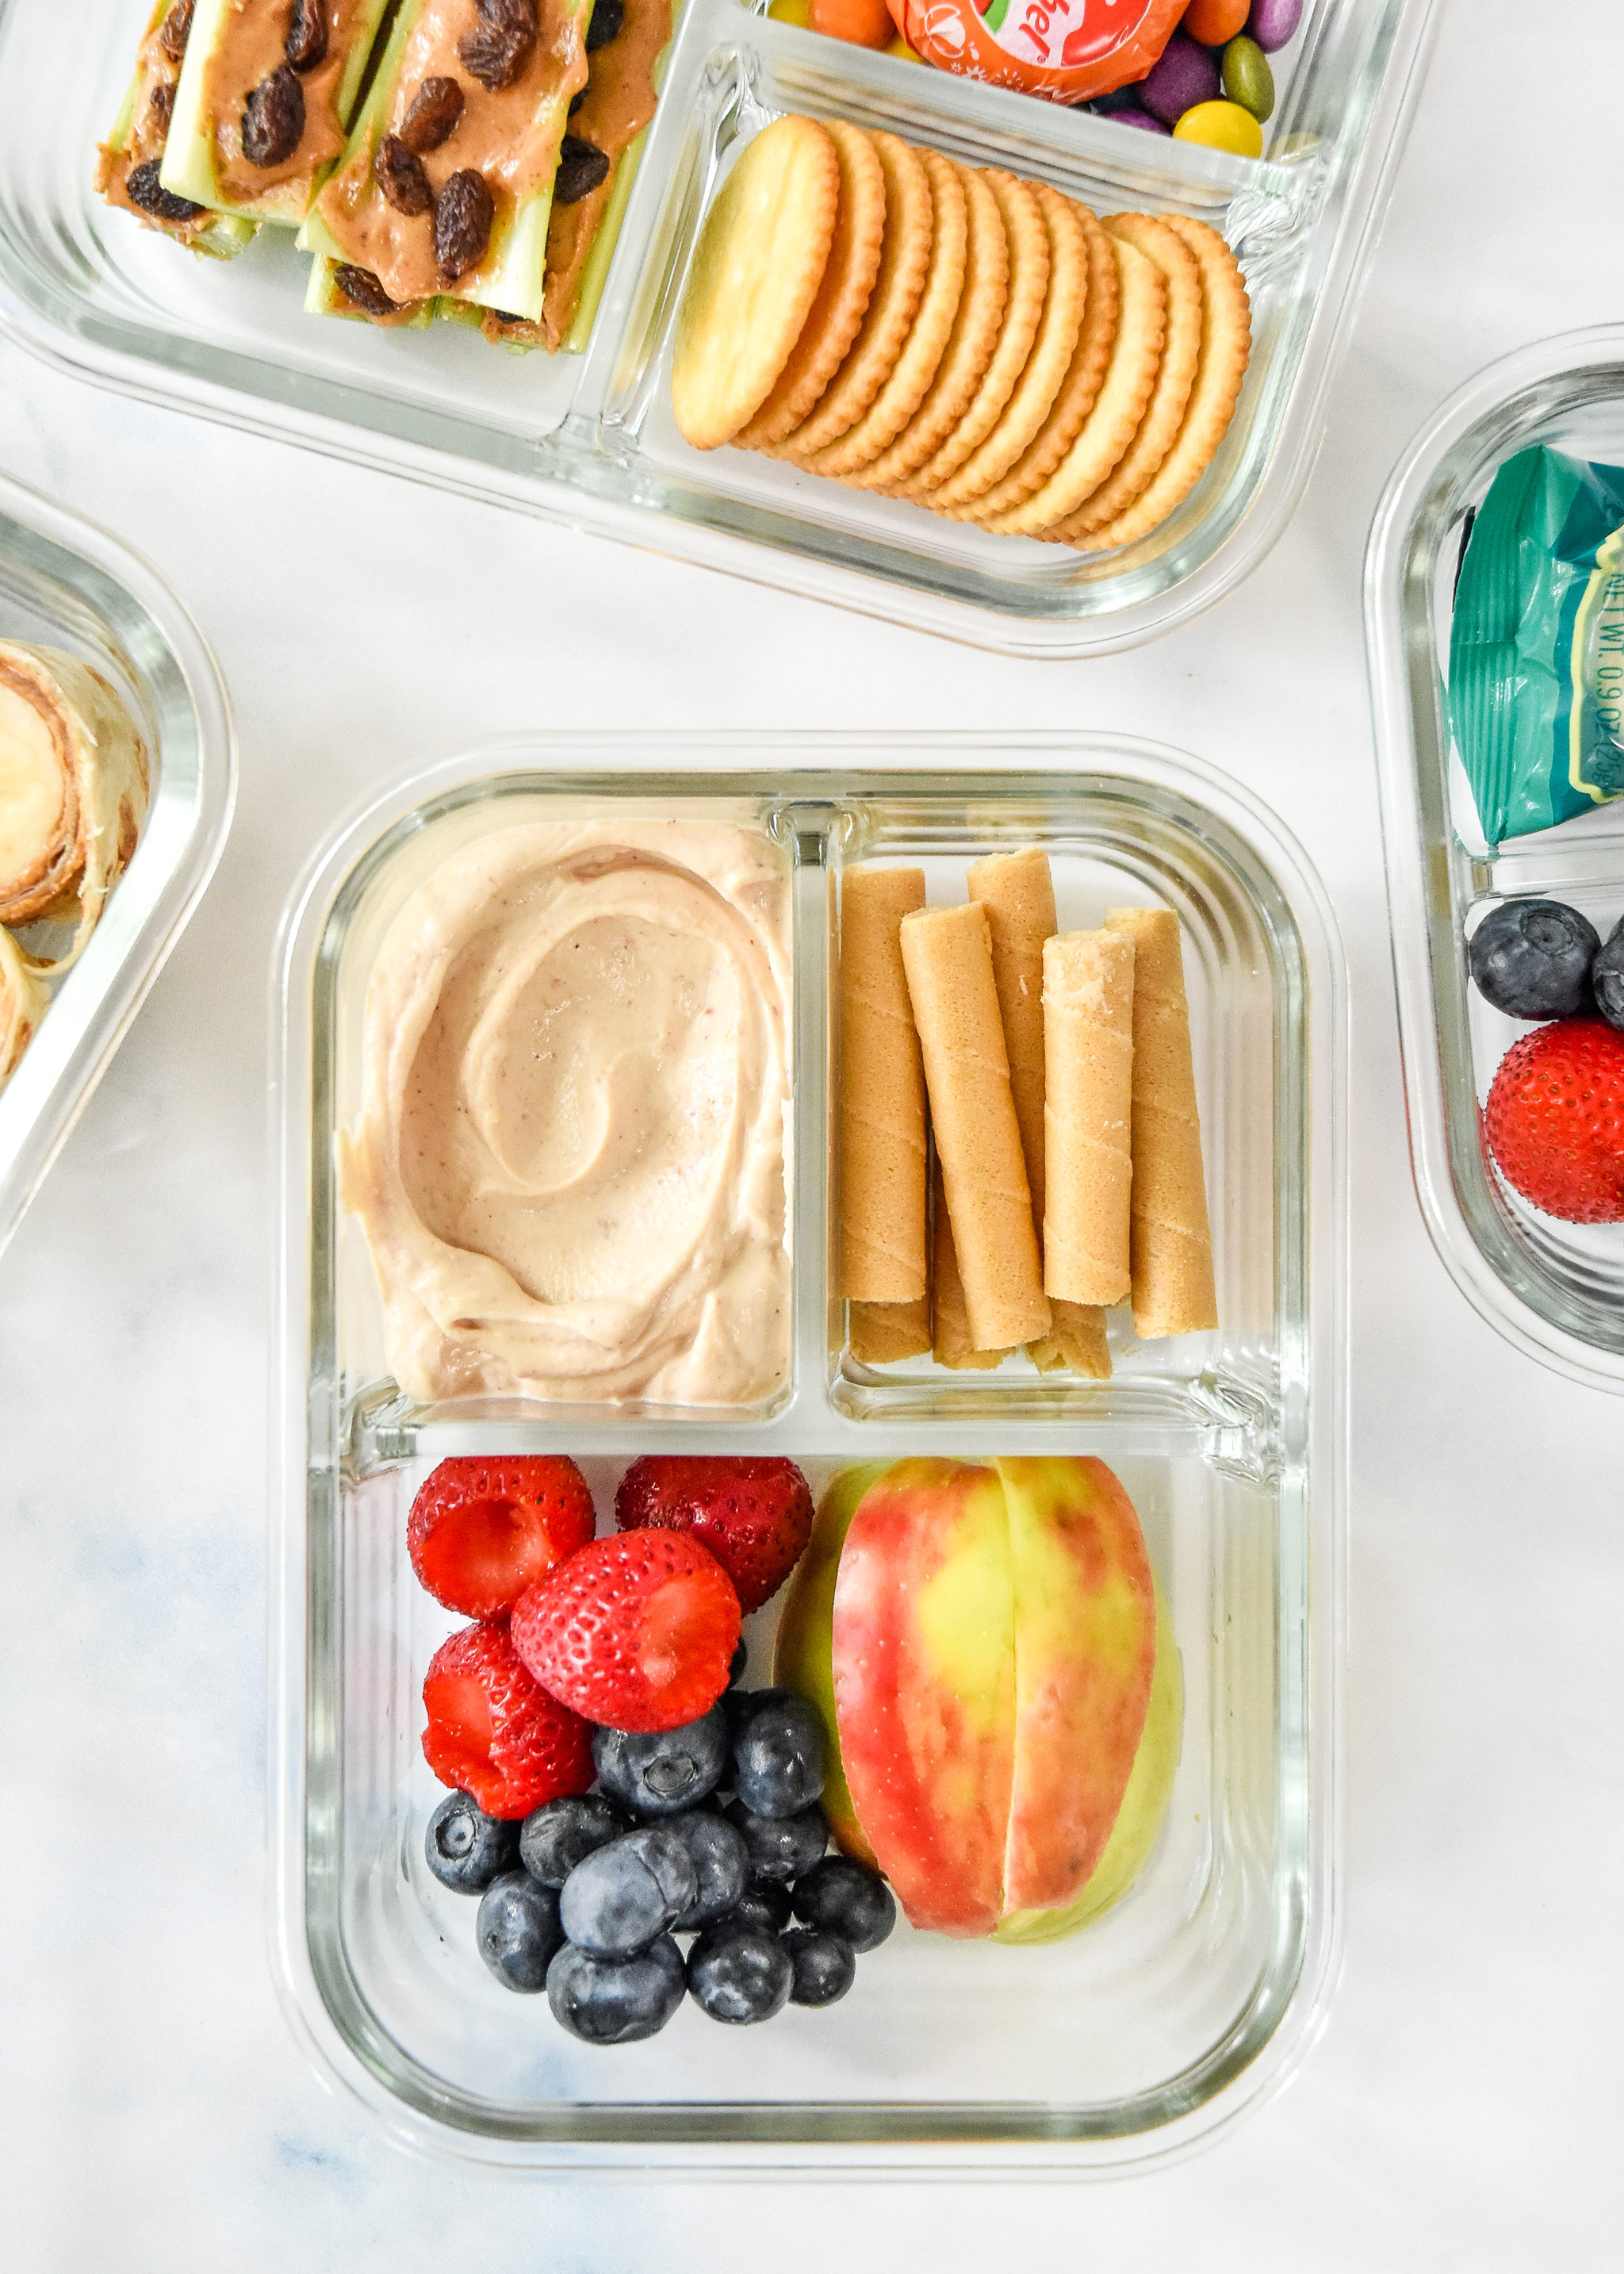 peanut butter yogurt dip with fruit and wafers in a glass meal prep container.